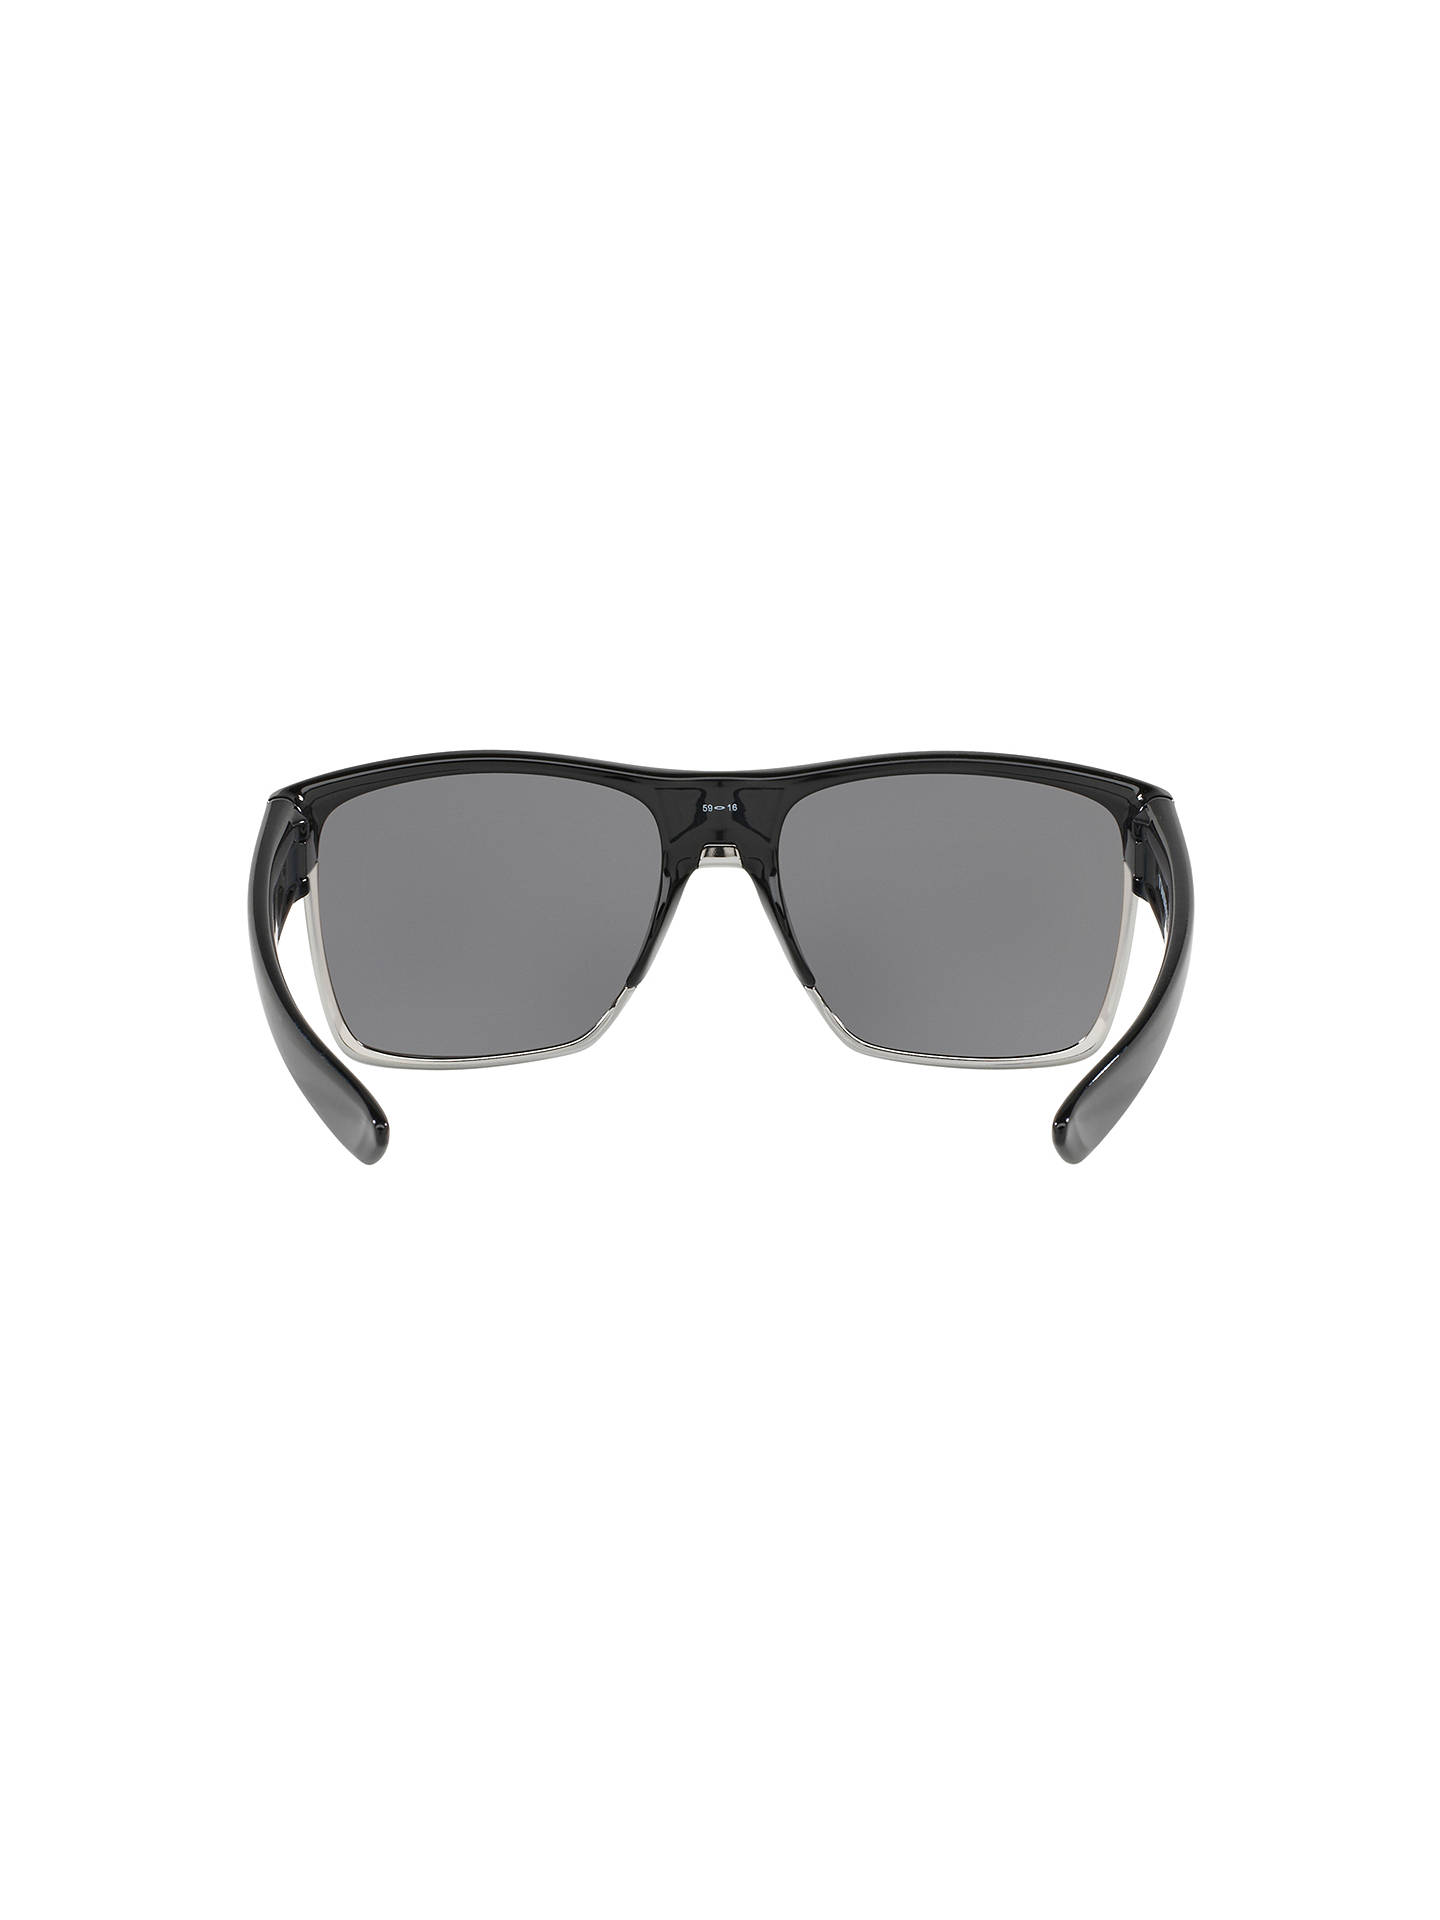 67068c97f2 Oakley OO9350 Two Face XL Square Sunglasses at John Lewis   Partners